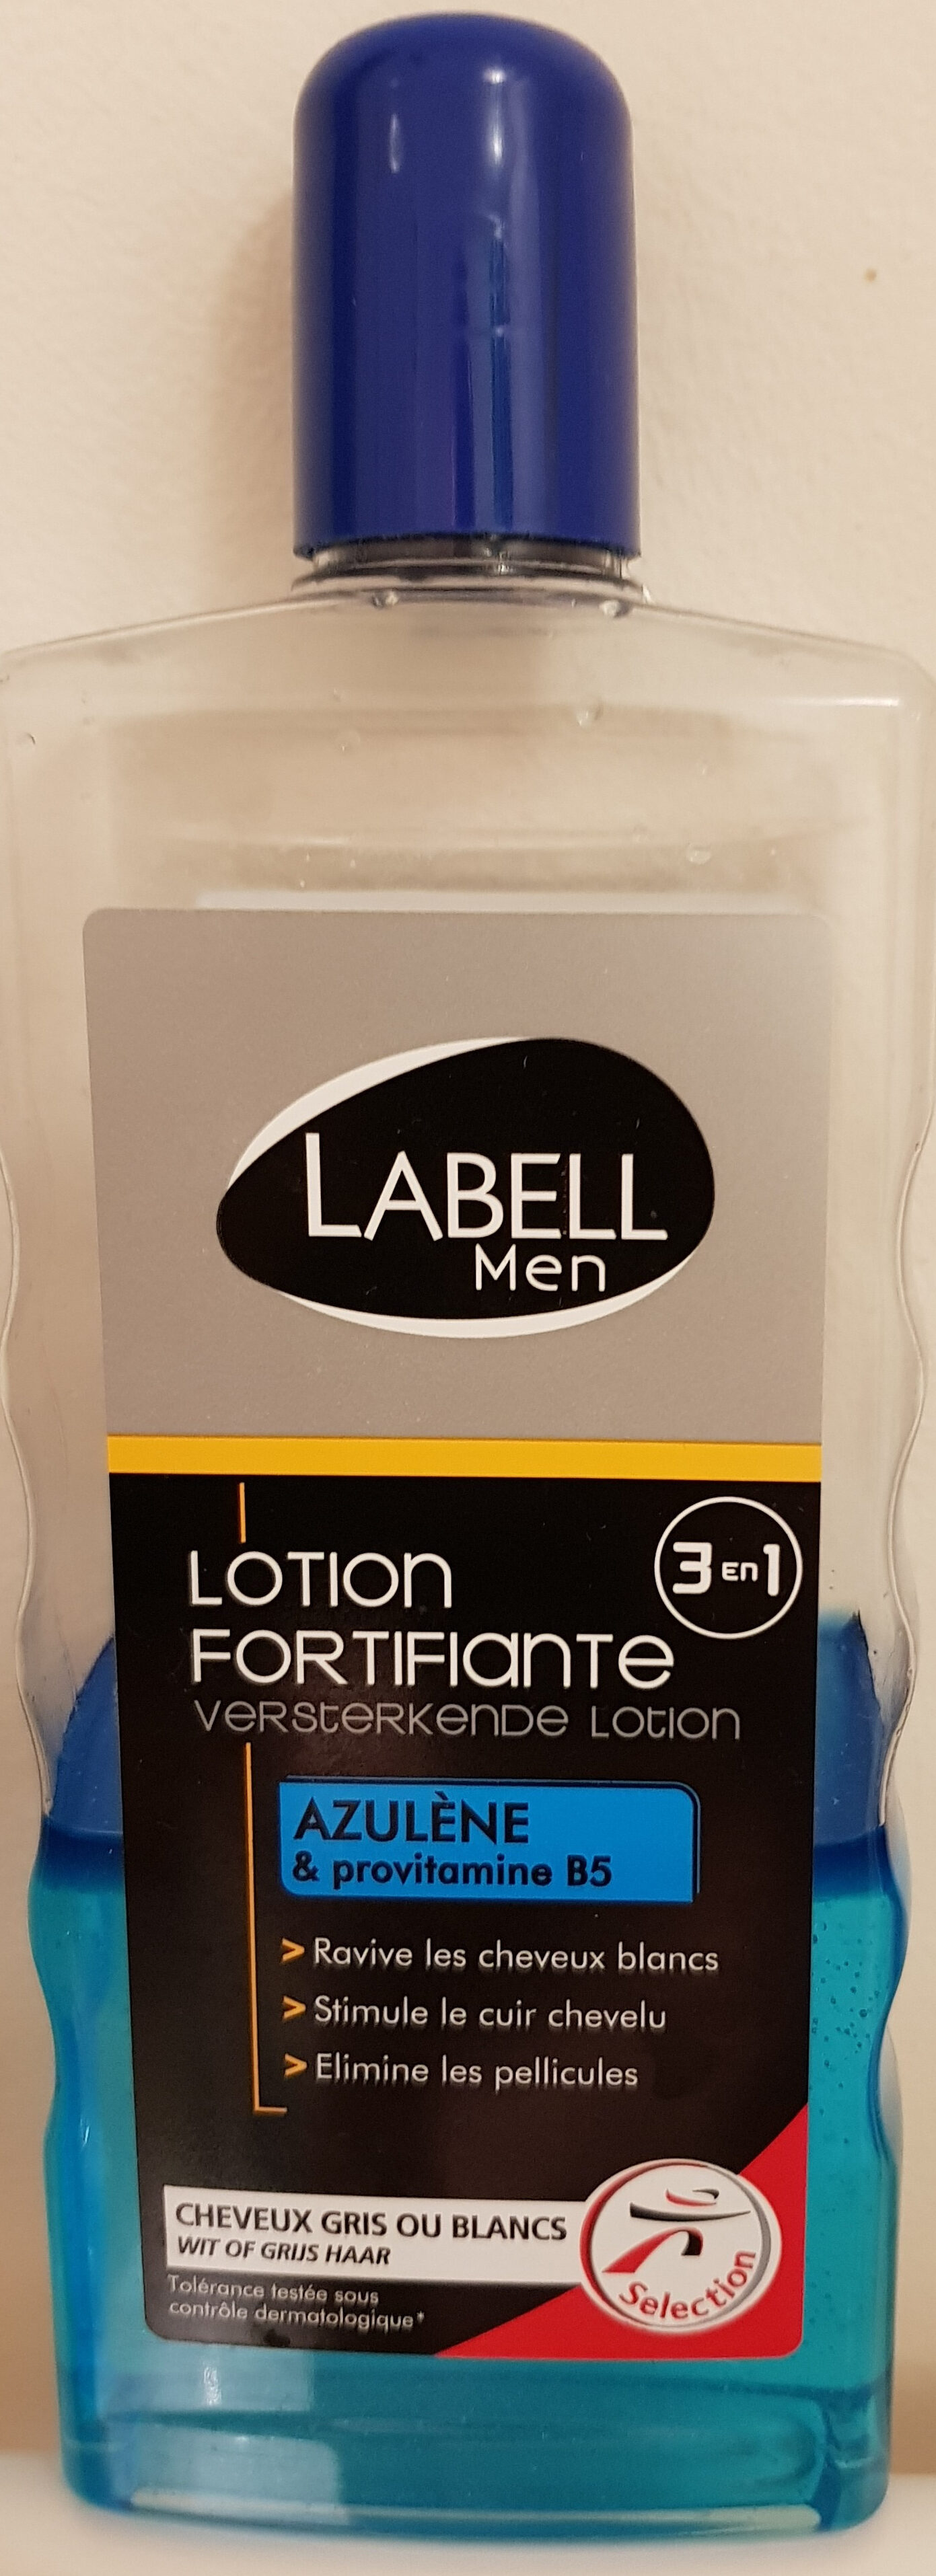 Lotion fortifiante - Product - fr